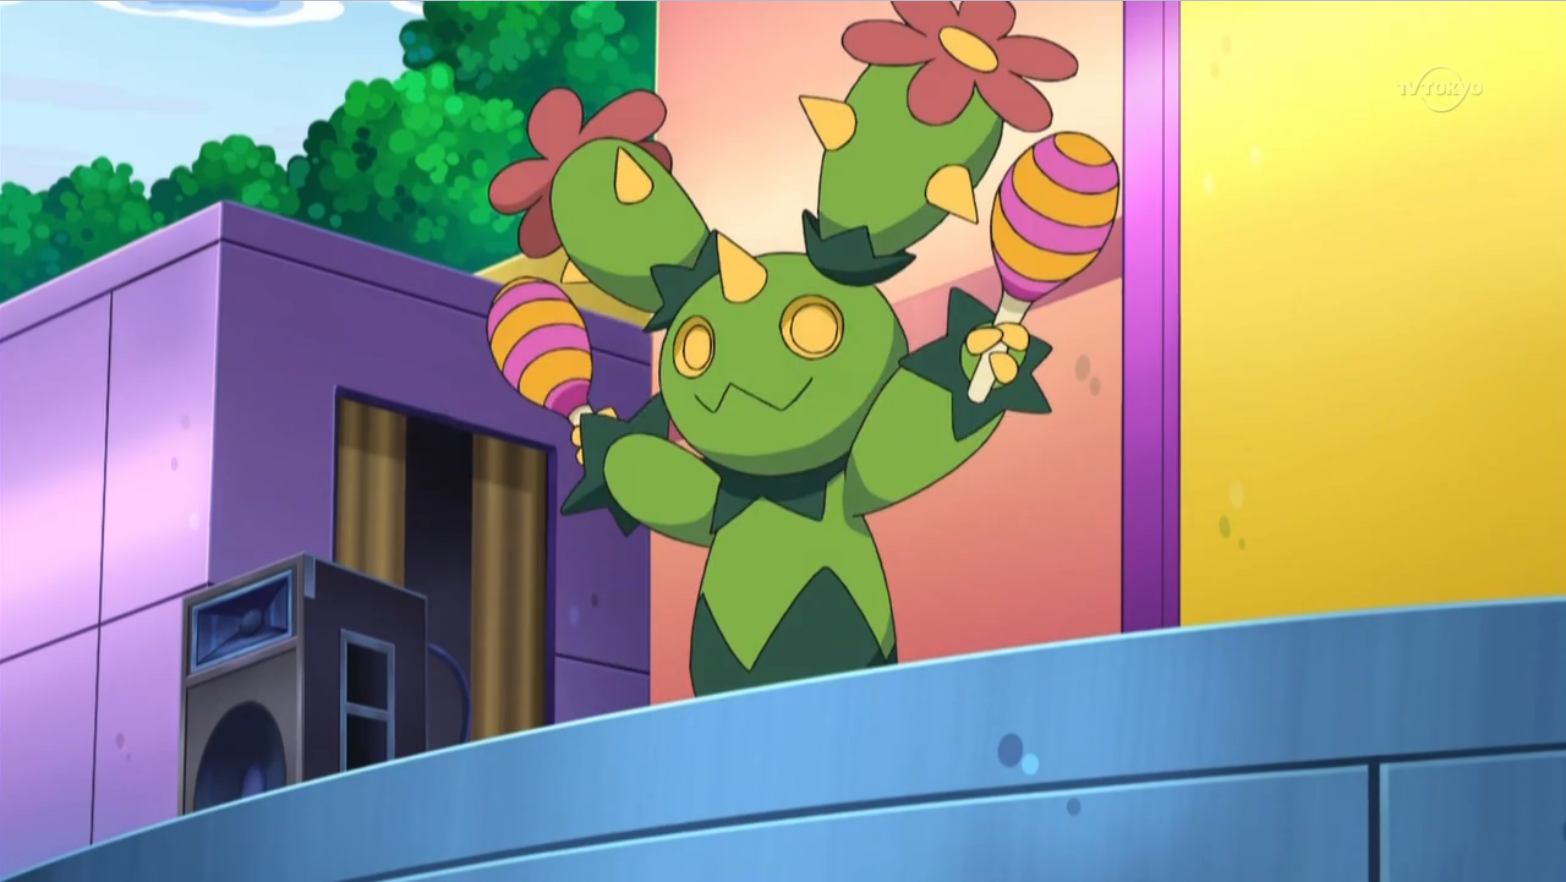 Marra is one of Toby's Maractus, who was used to perform in musicals.